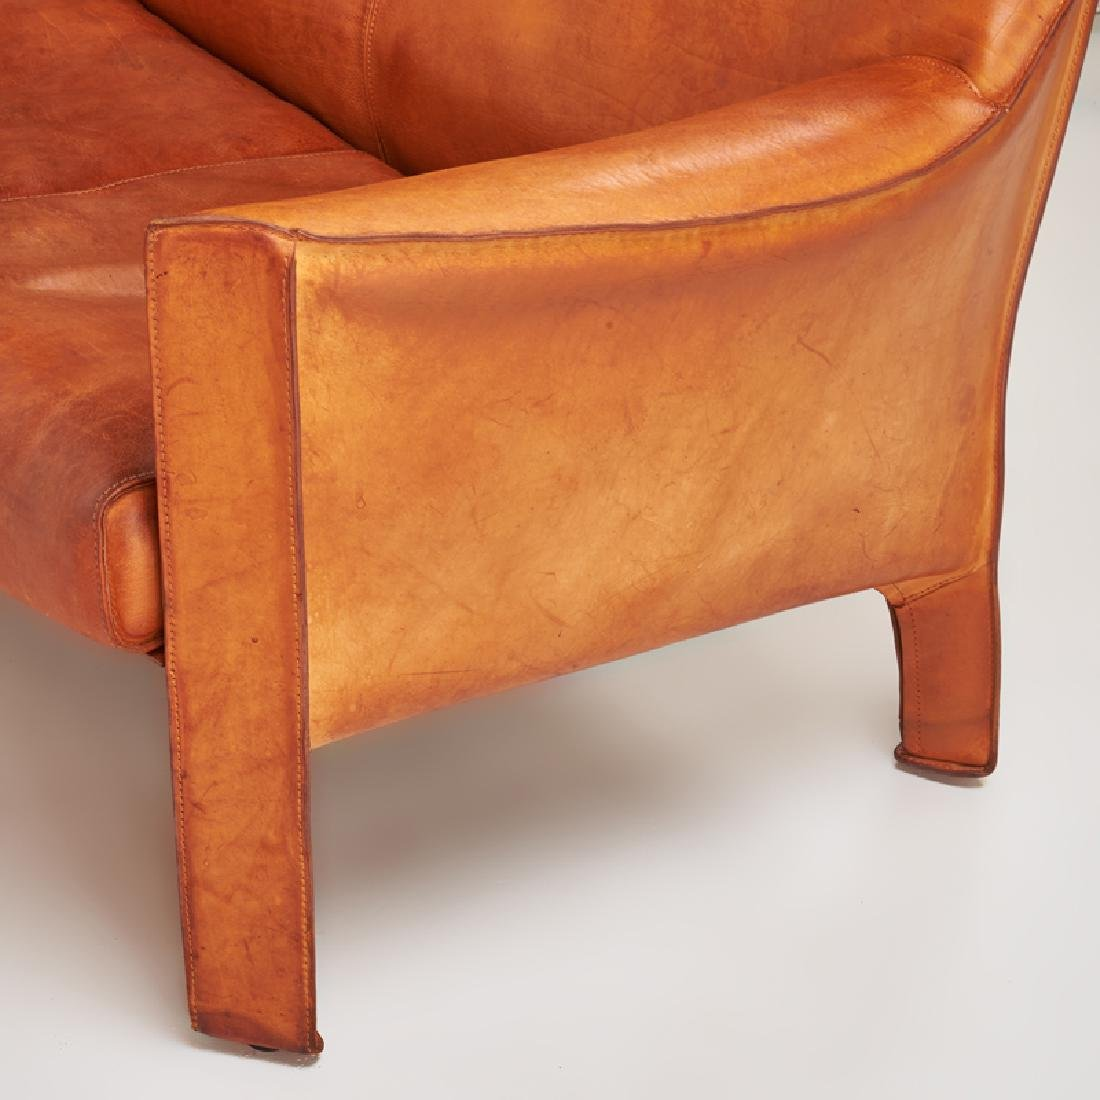 MARIO BELLINI Cab love seat, pr. of lounge chairs - 5